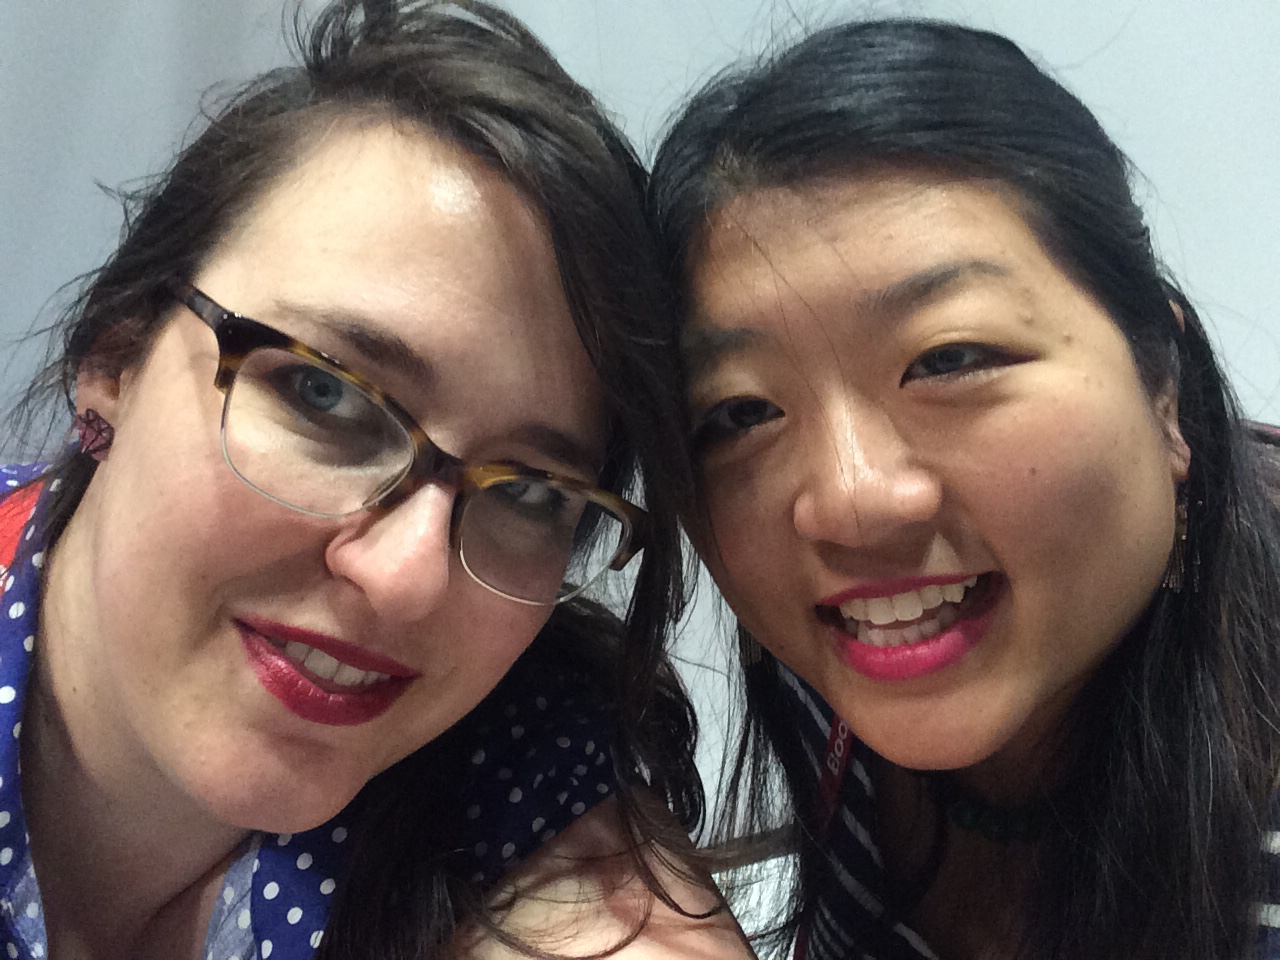 Tiff from Mostly YA Lit and I, sitting on the floor. See? Isn't she adorable?